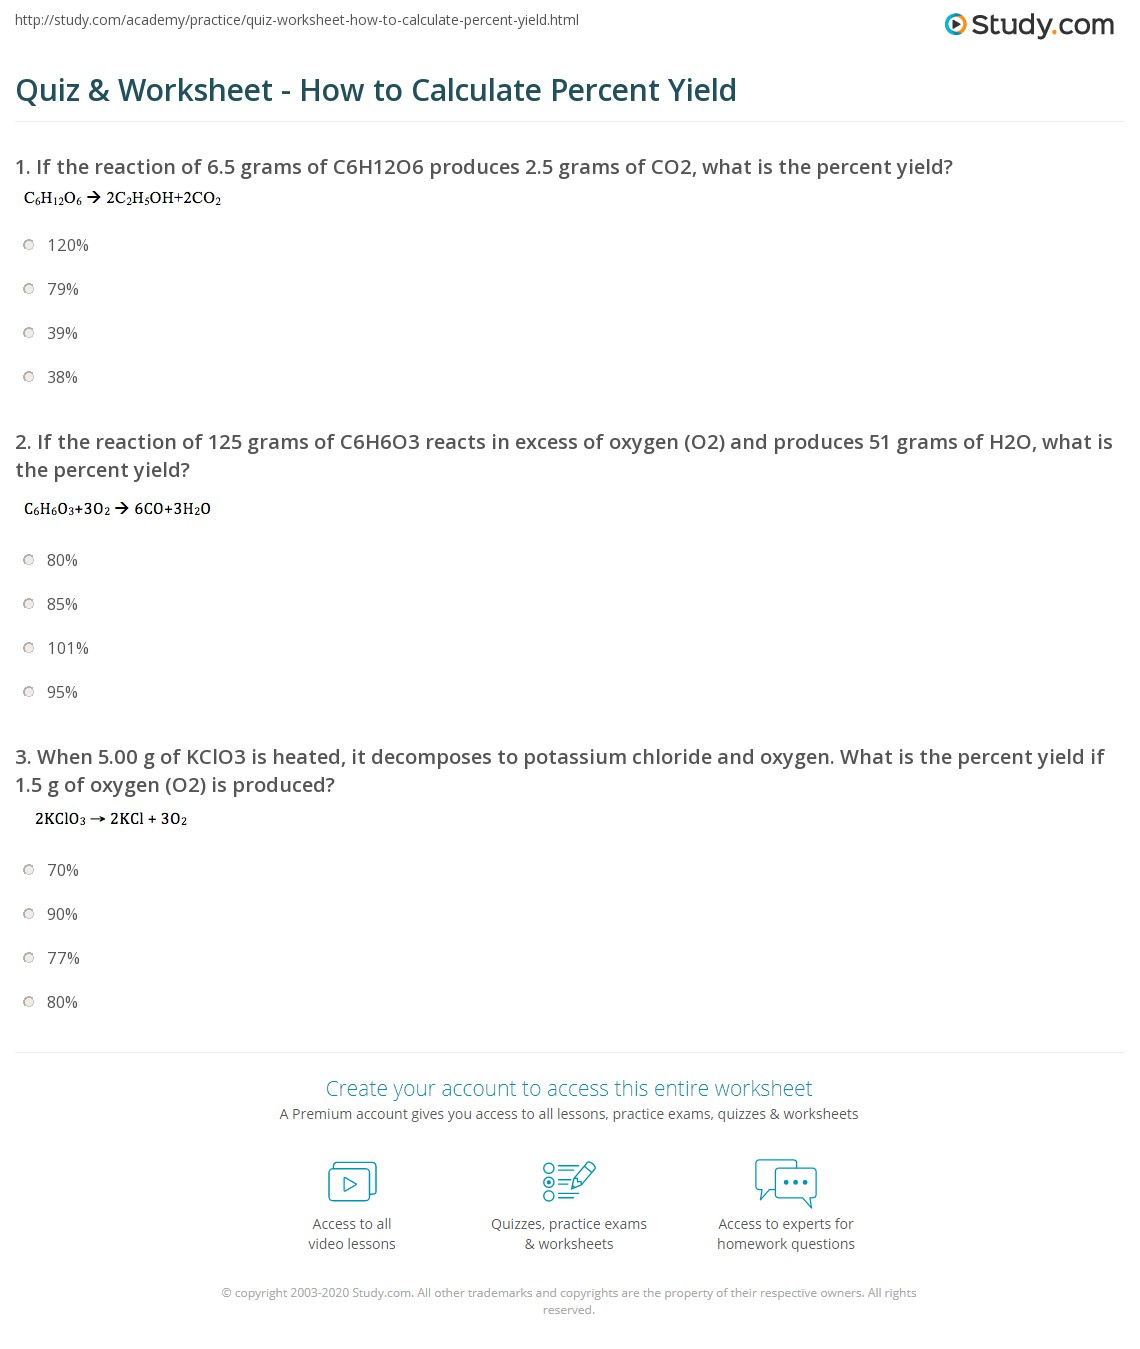 Quiz & Worksheet - How to Calculate Percent Yield | Study.com